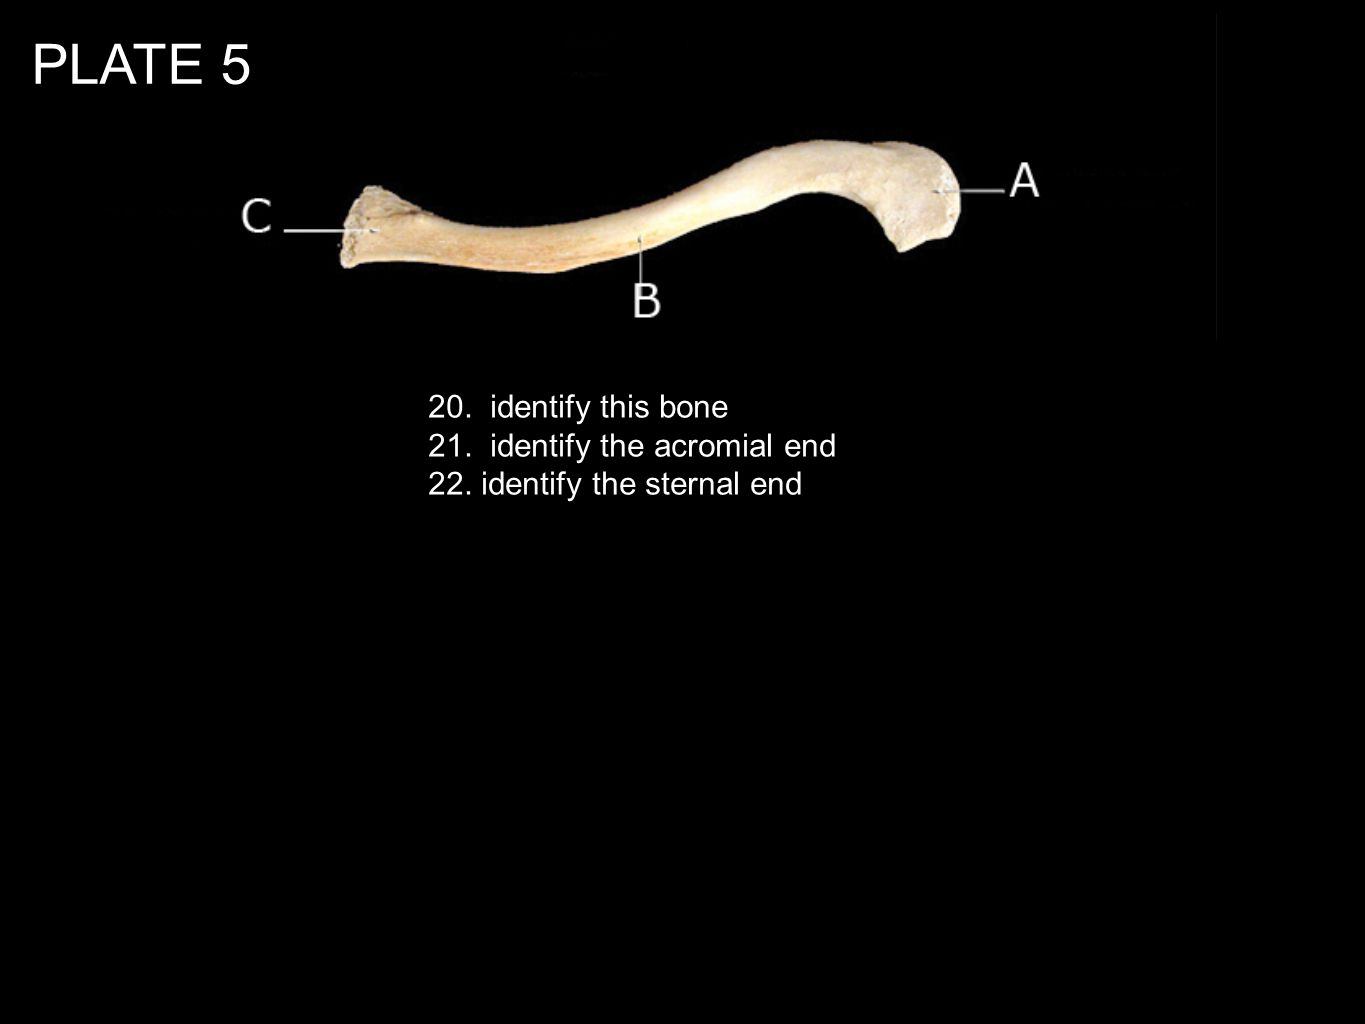 PLATE 5 20. identify this bone 21. identify the acromial end 22. identify the sternal end